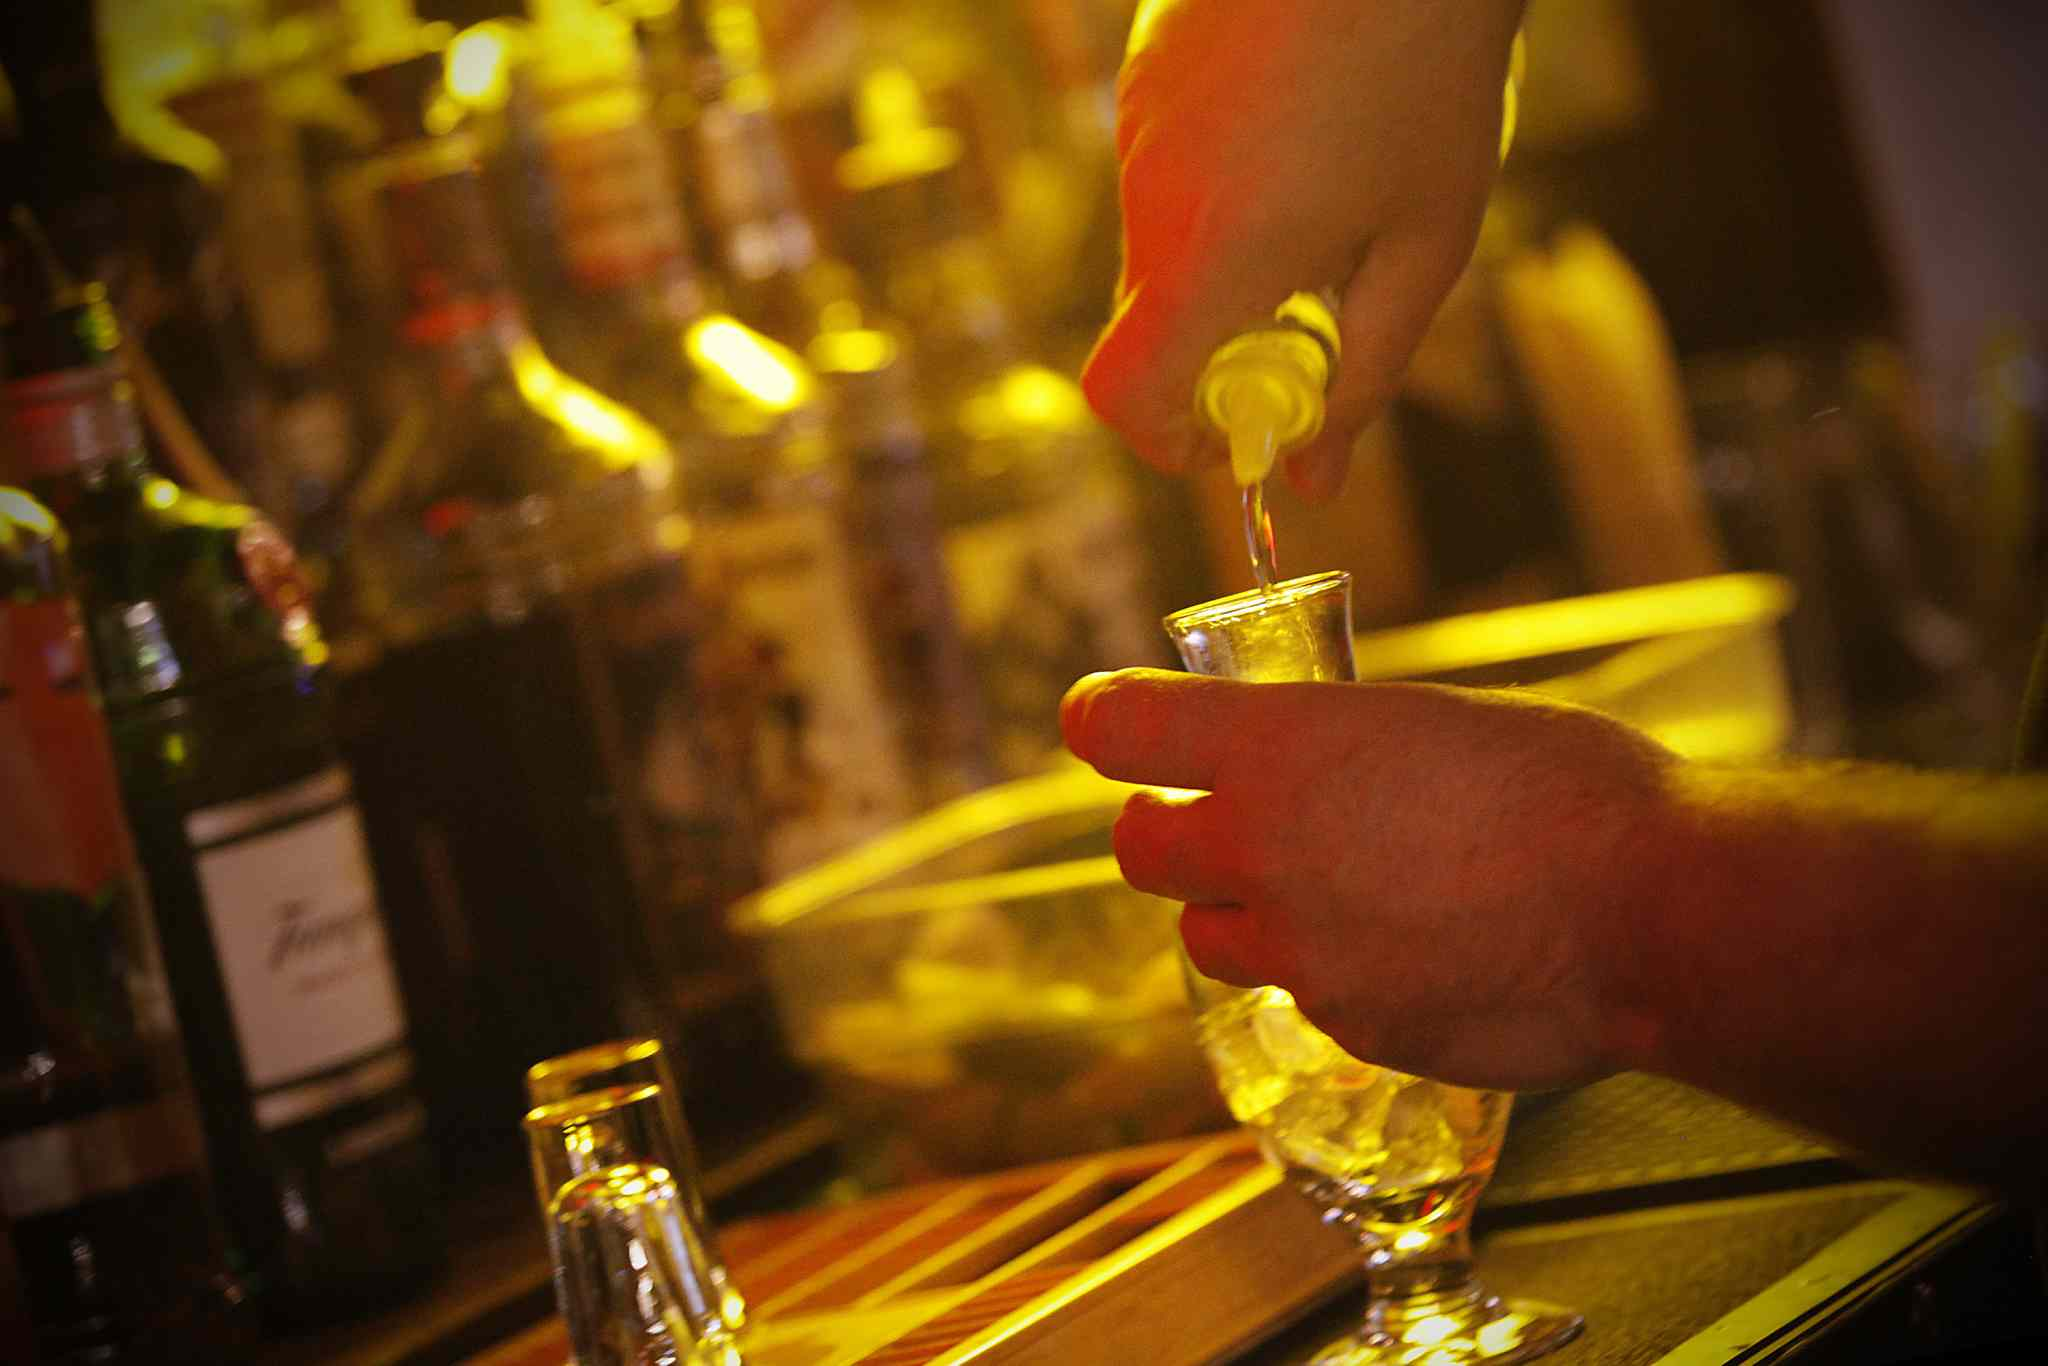 On April 1, Manitoba's antiquated liquor laws will become a thing of the past.